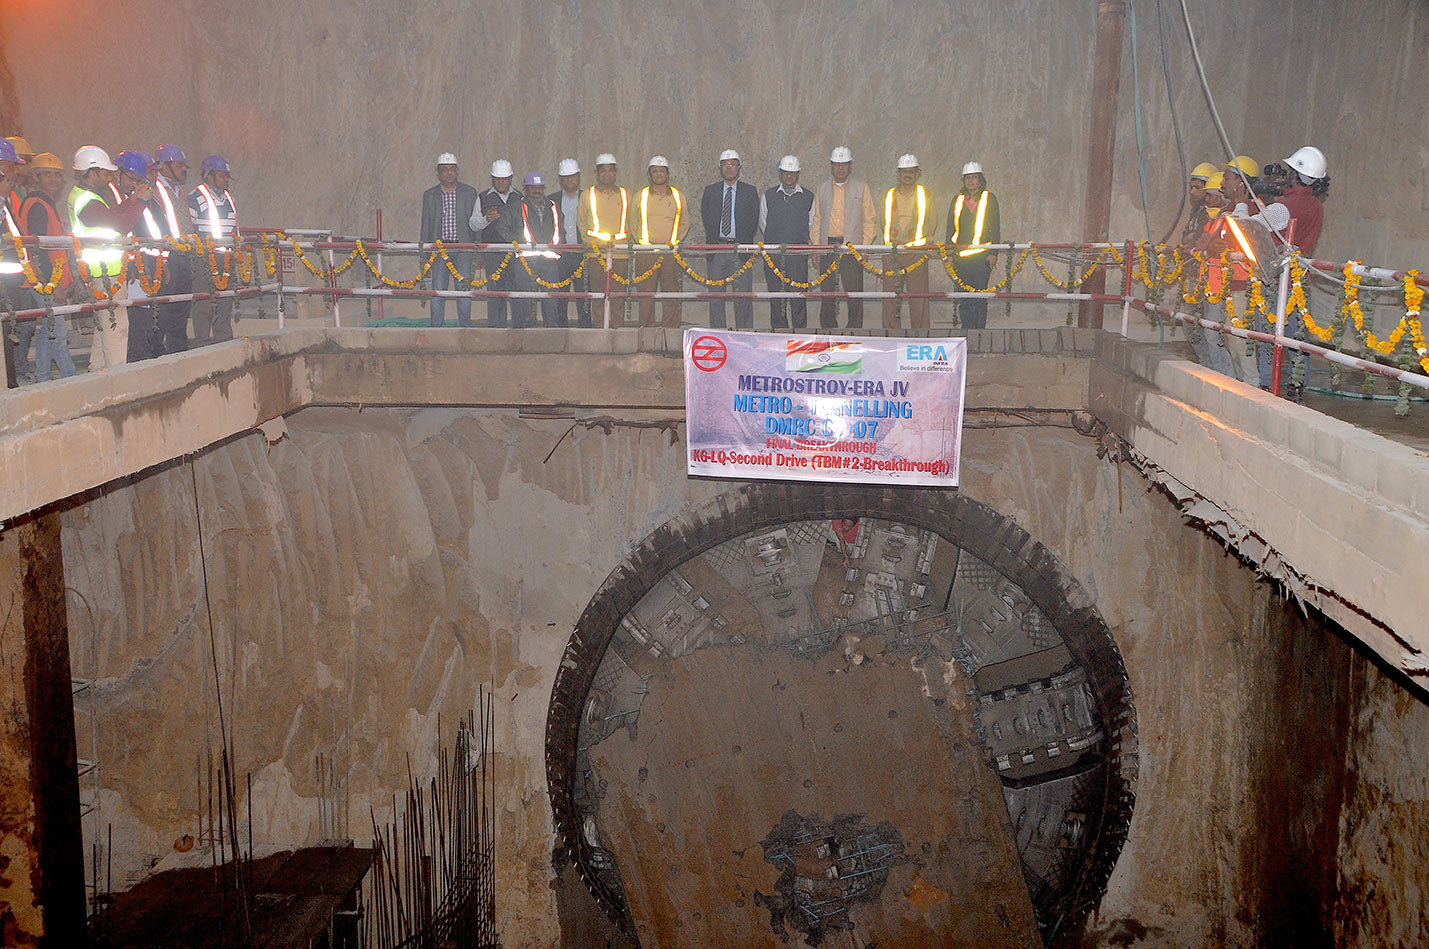 Final CC-07 breakthrough into Kashmere Gate Station